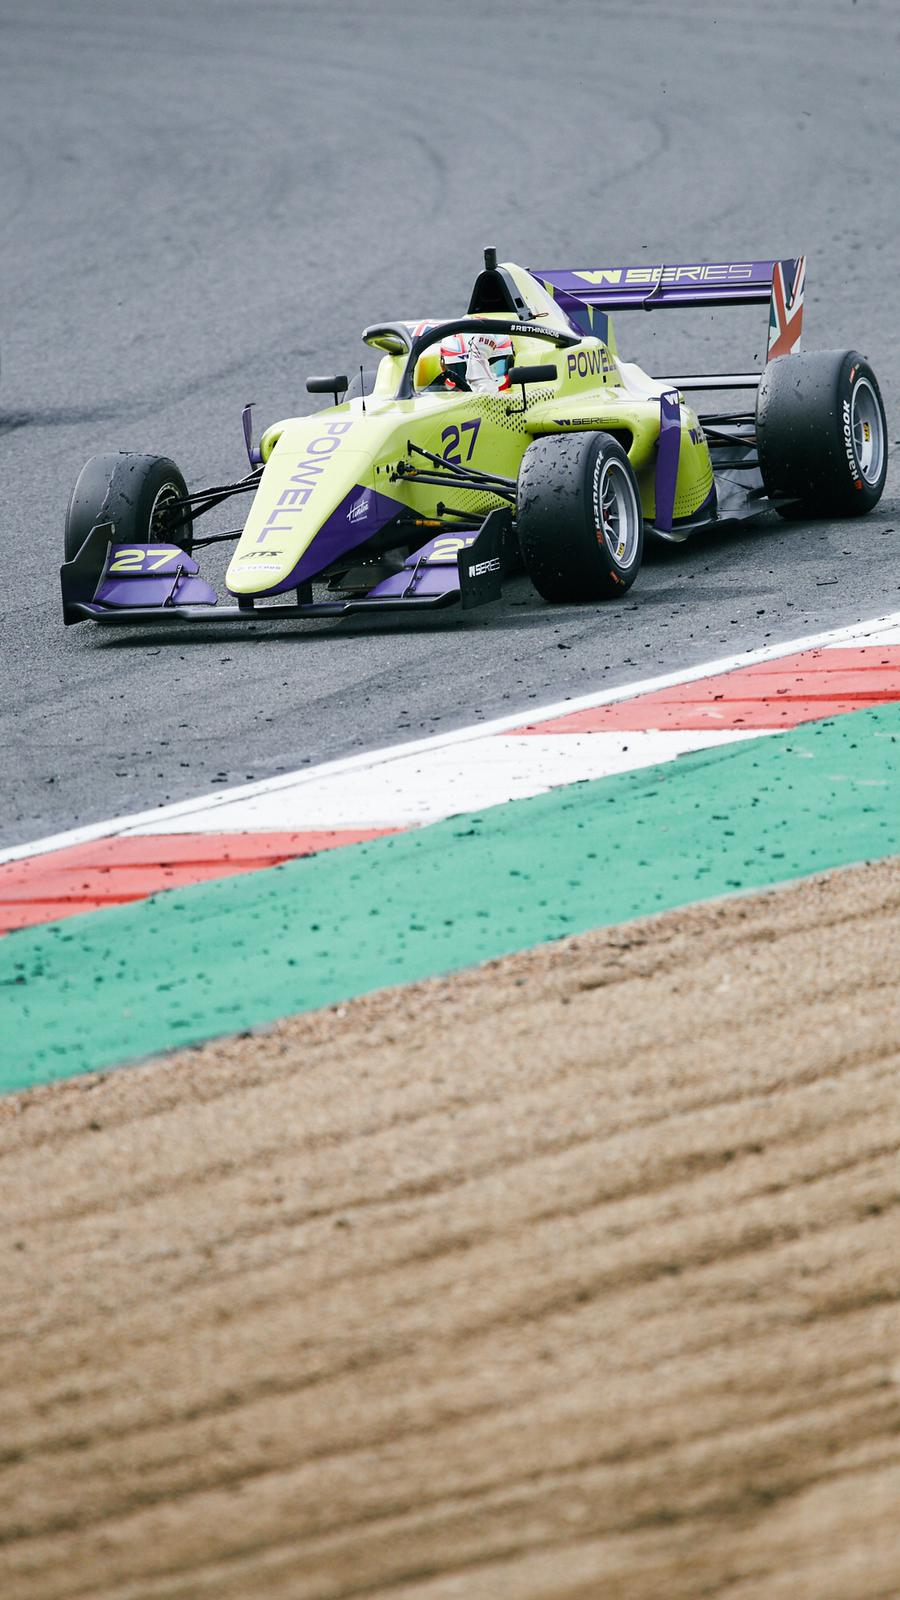 Ultimately Alice Powell took the Brands Hatch event